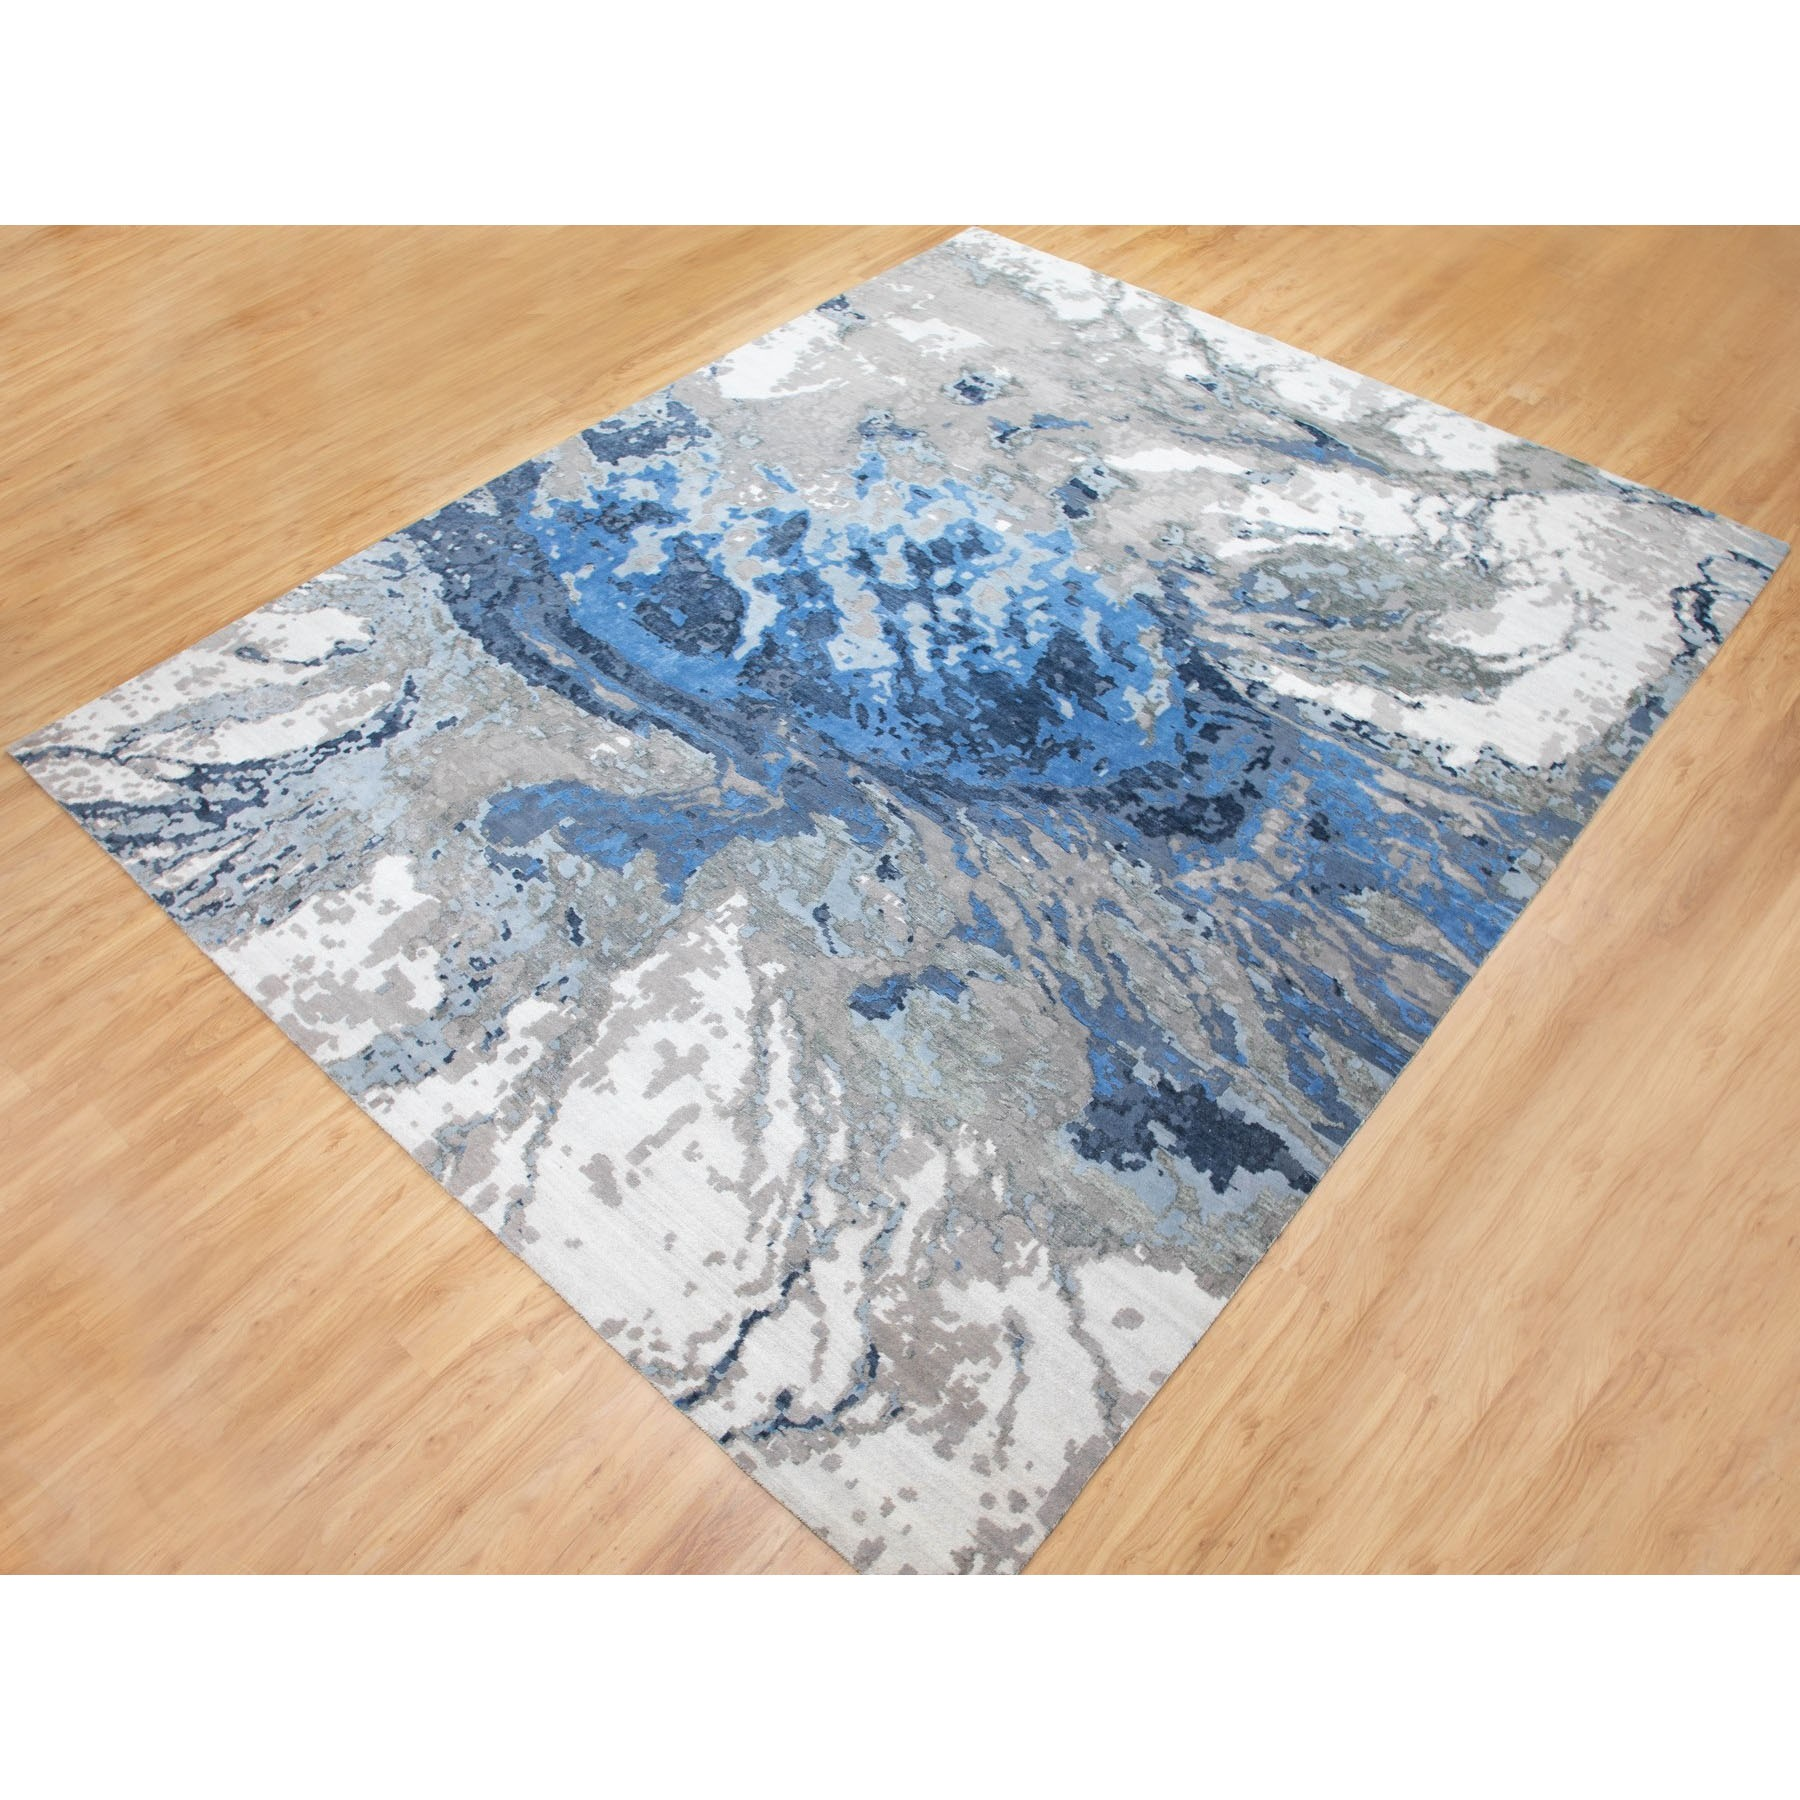 12'x15' Oversized Abstract Design Wool And Silk Hi-low Pile Hand Knotted Oriental Rug